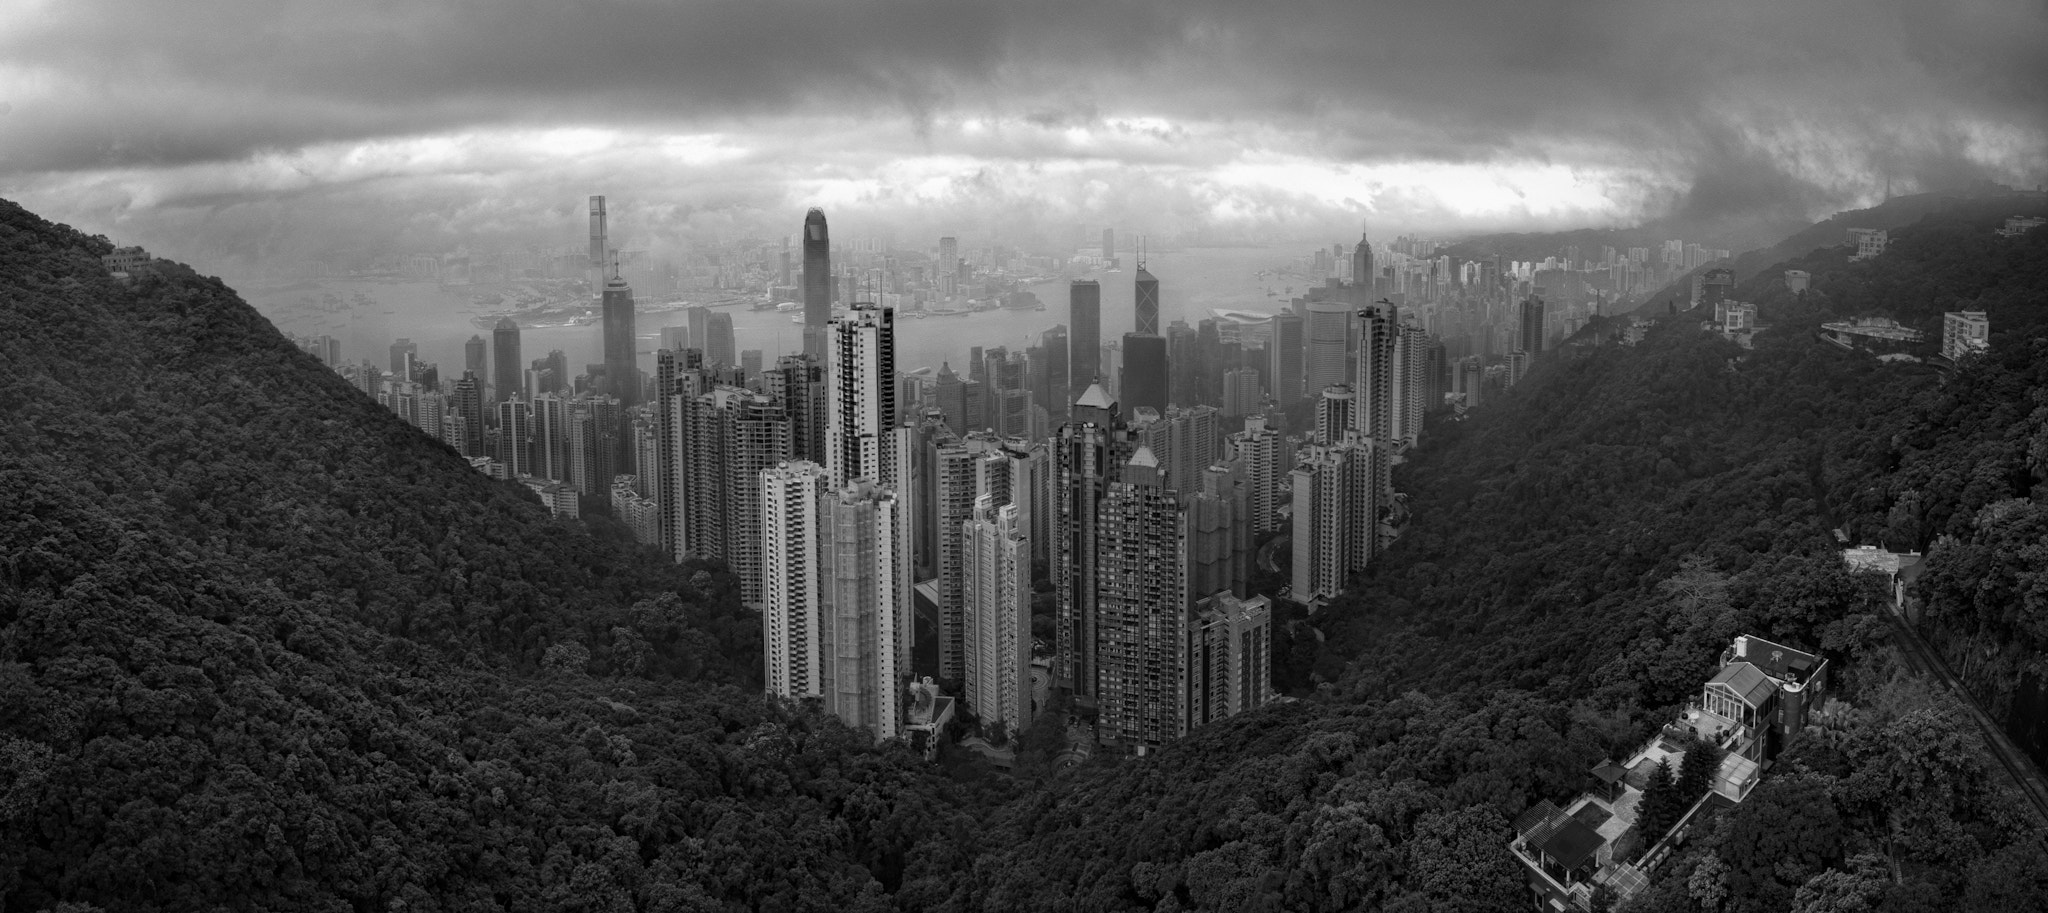 Photograph Incoming Shower over Victoria Harbour, Hong Kong by Greig Houghton on 500px